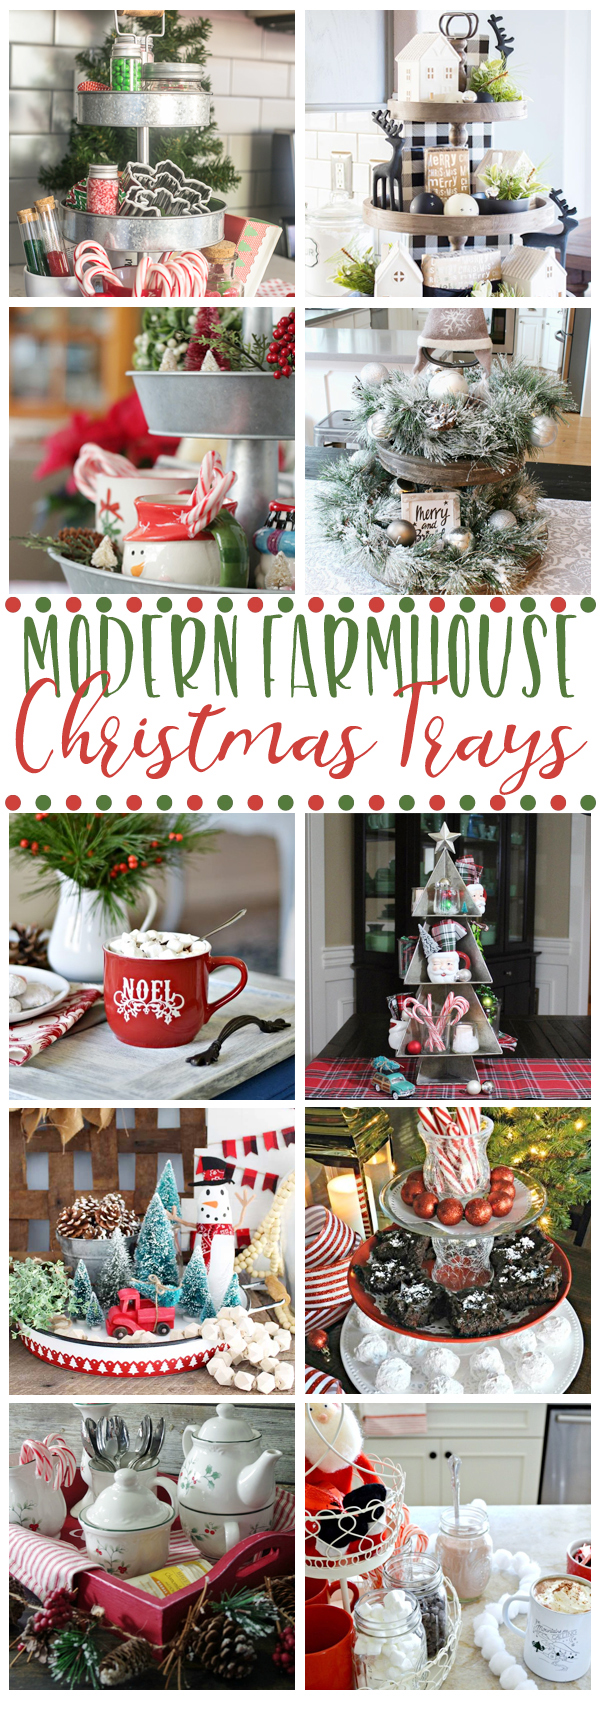 Beautiful collection of modern farmhouse Christmas trays. Easy Christmas decorating ideas that anyone can do! #Christmasdecoratingideas #farmhousestyle